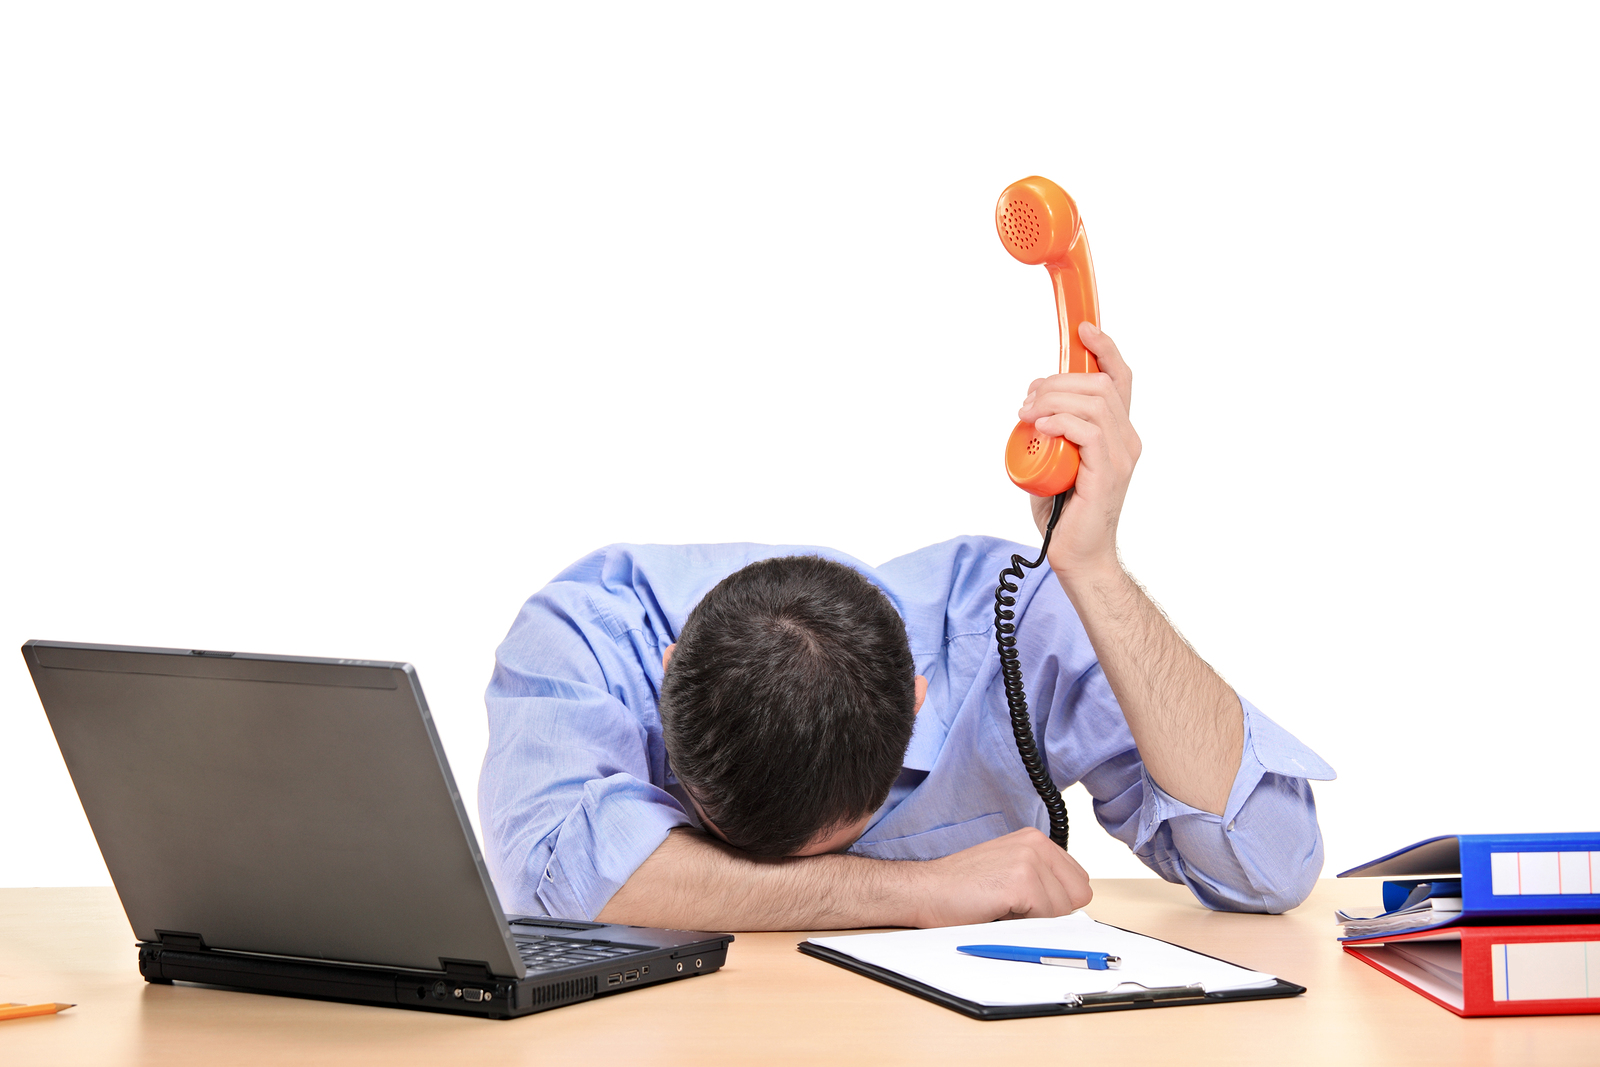 . PlusPng.com bigstock-Exhausted-Businessman-Holding-10585745.jpg PlusPng.com  - PNG Exhausted Person